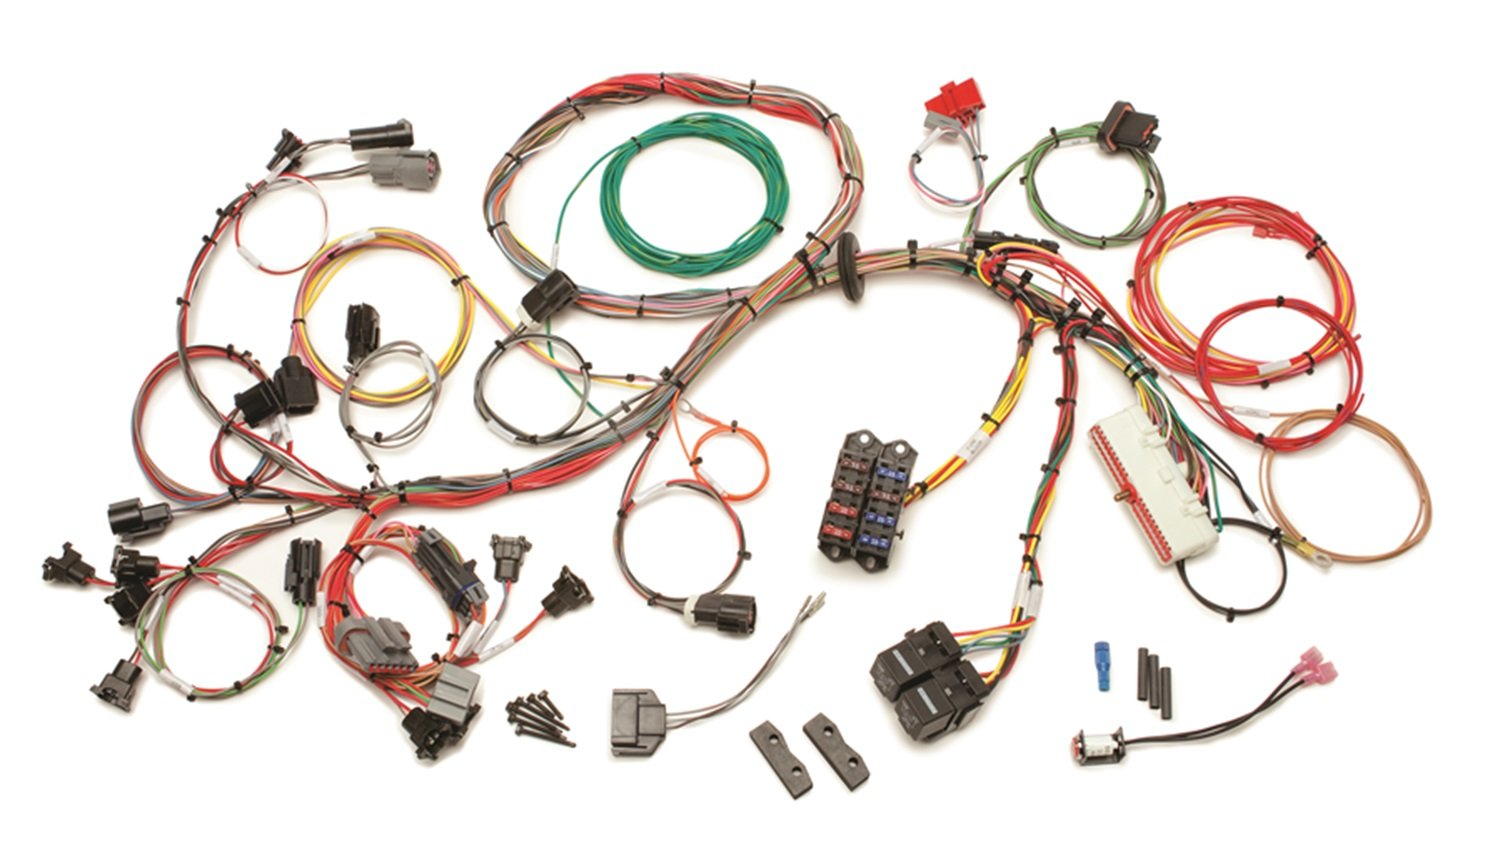 71UX1IBfleL._SL1500_ amazon com painless 60510 5 0l wiring harness automotive ford wiring harness at mifinder.co